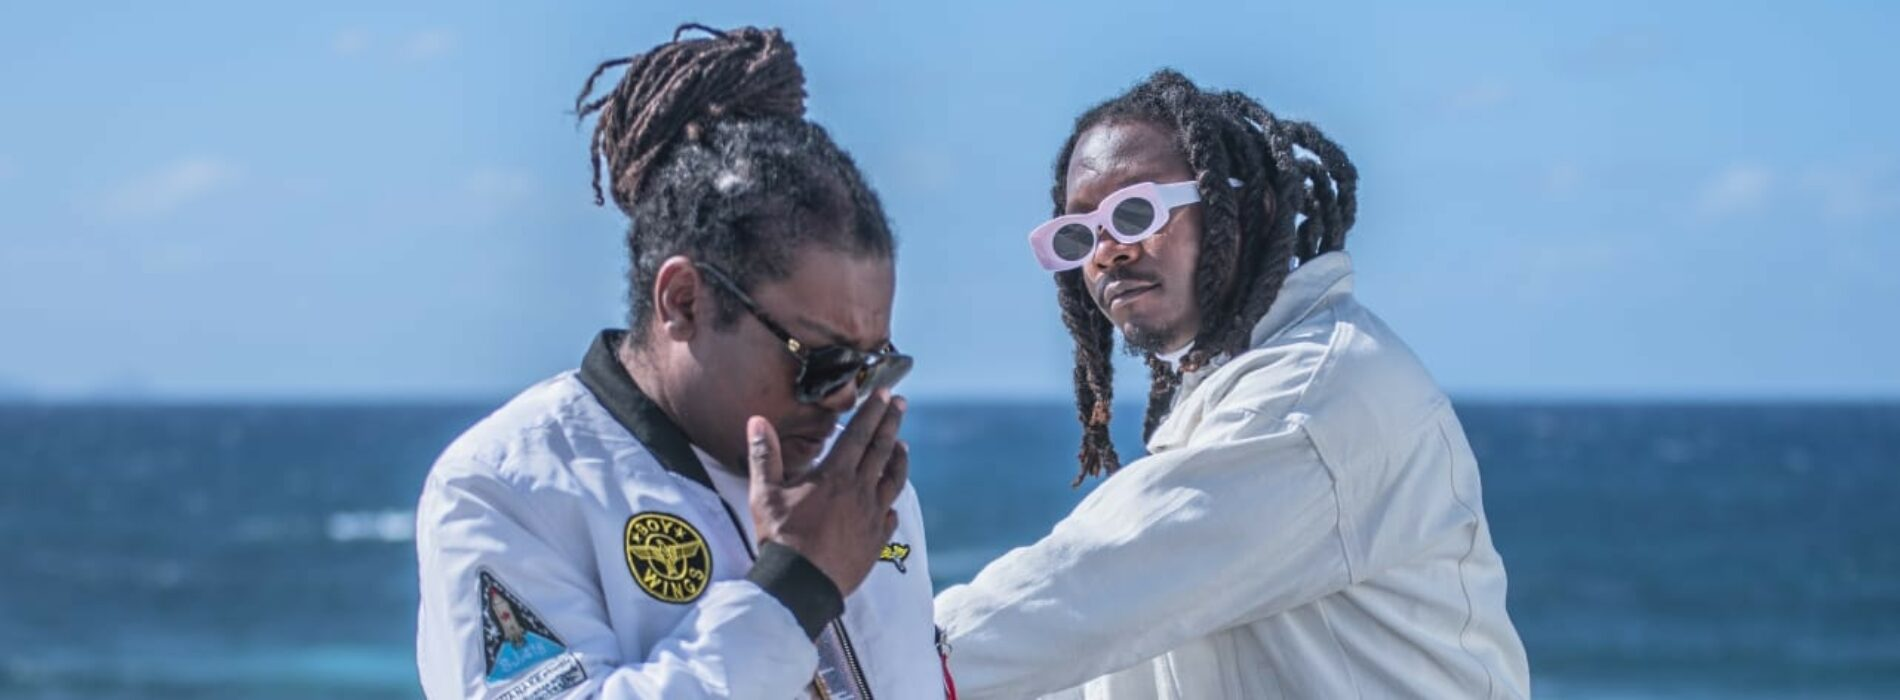 Blakkayo – Whine Sa Slowly ft. General Love (Official Video) – Octobre 2021🙏🇲🇺🇲🇺🇲🇺